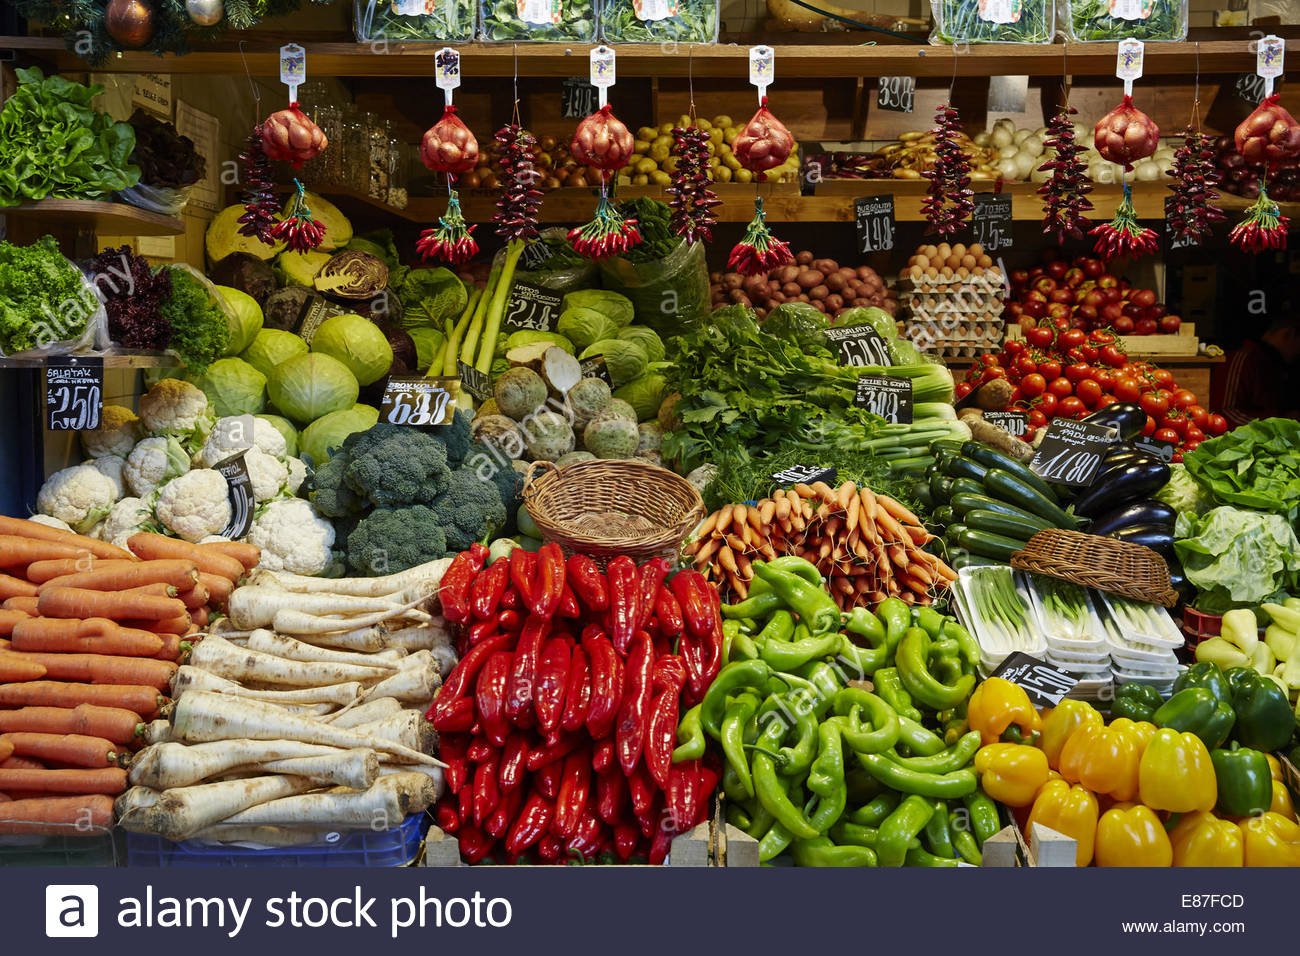 Produce, greengrocer, old fashion fruit & vegetable market with various colorful fresh produce - Stock Image